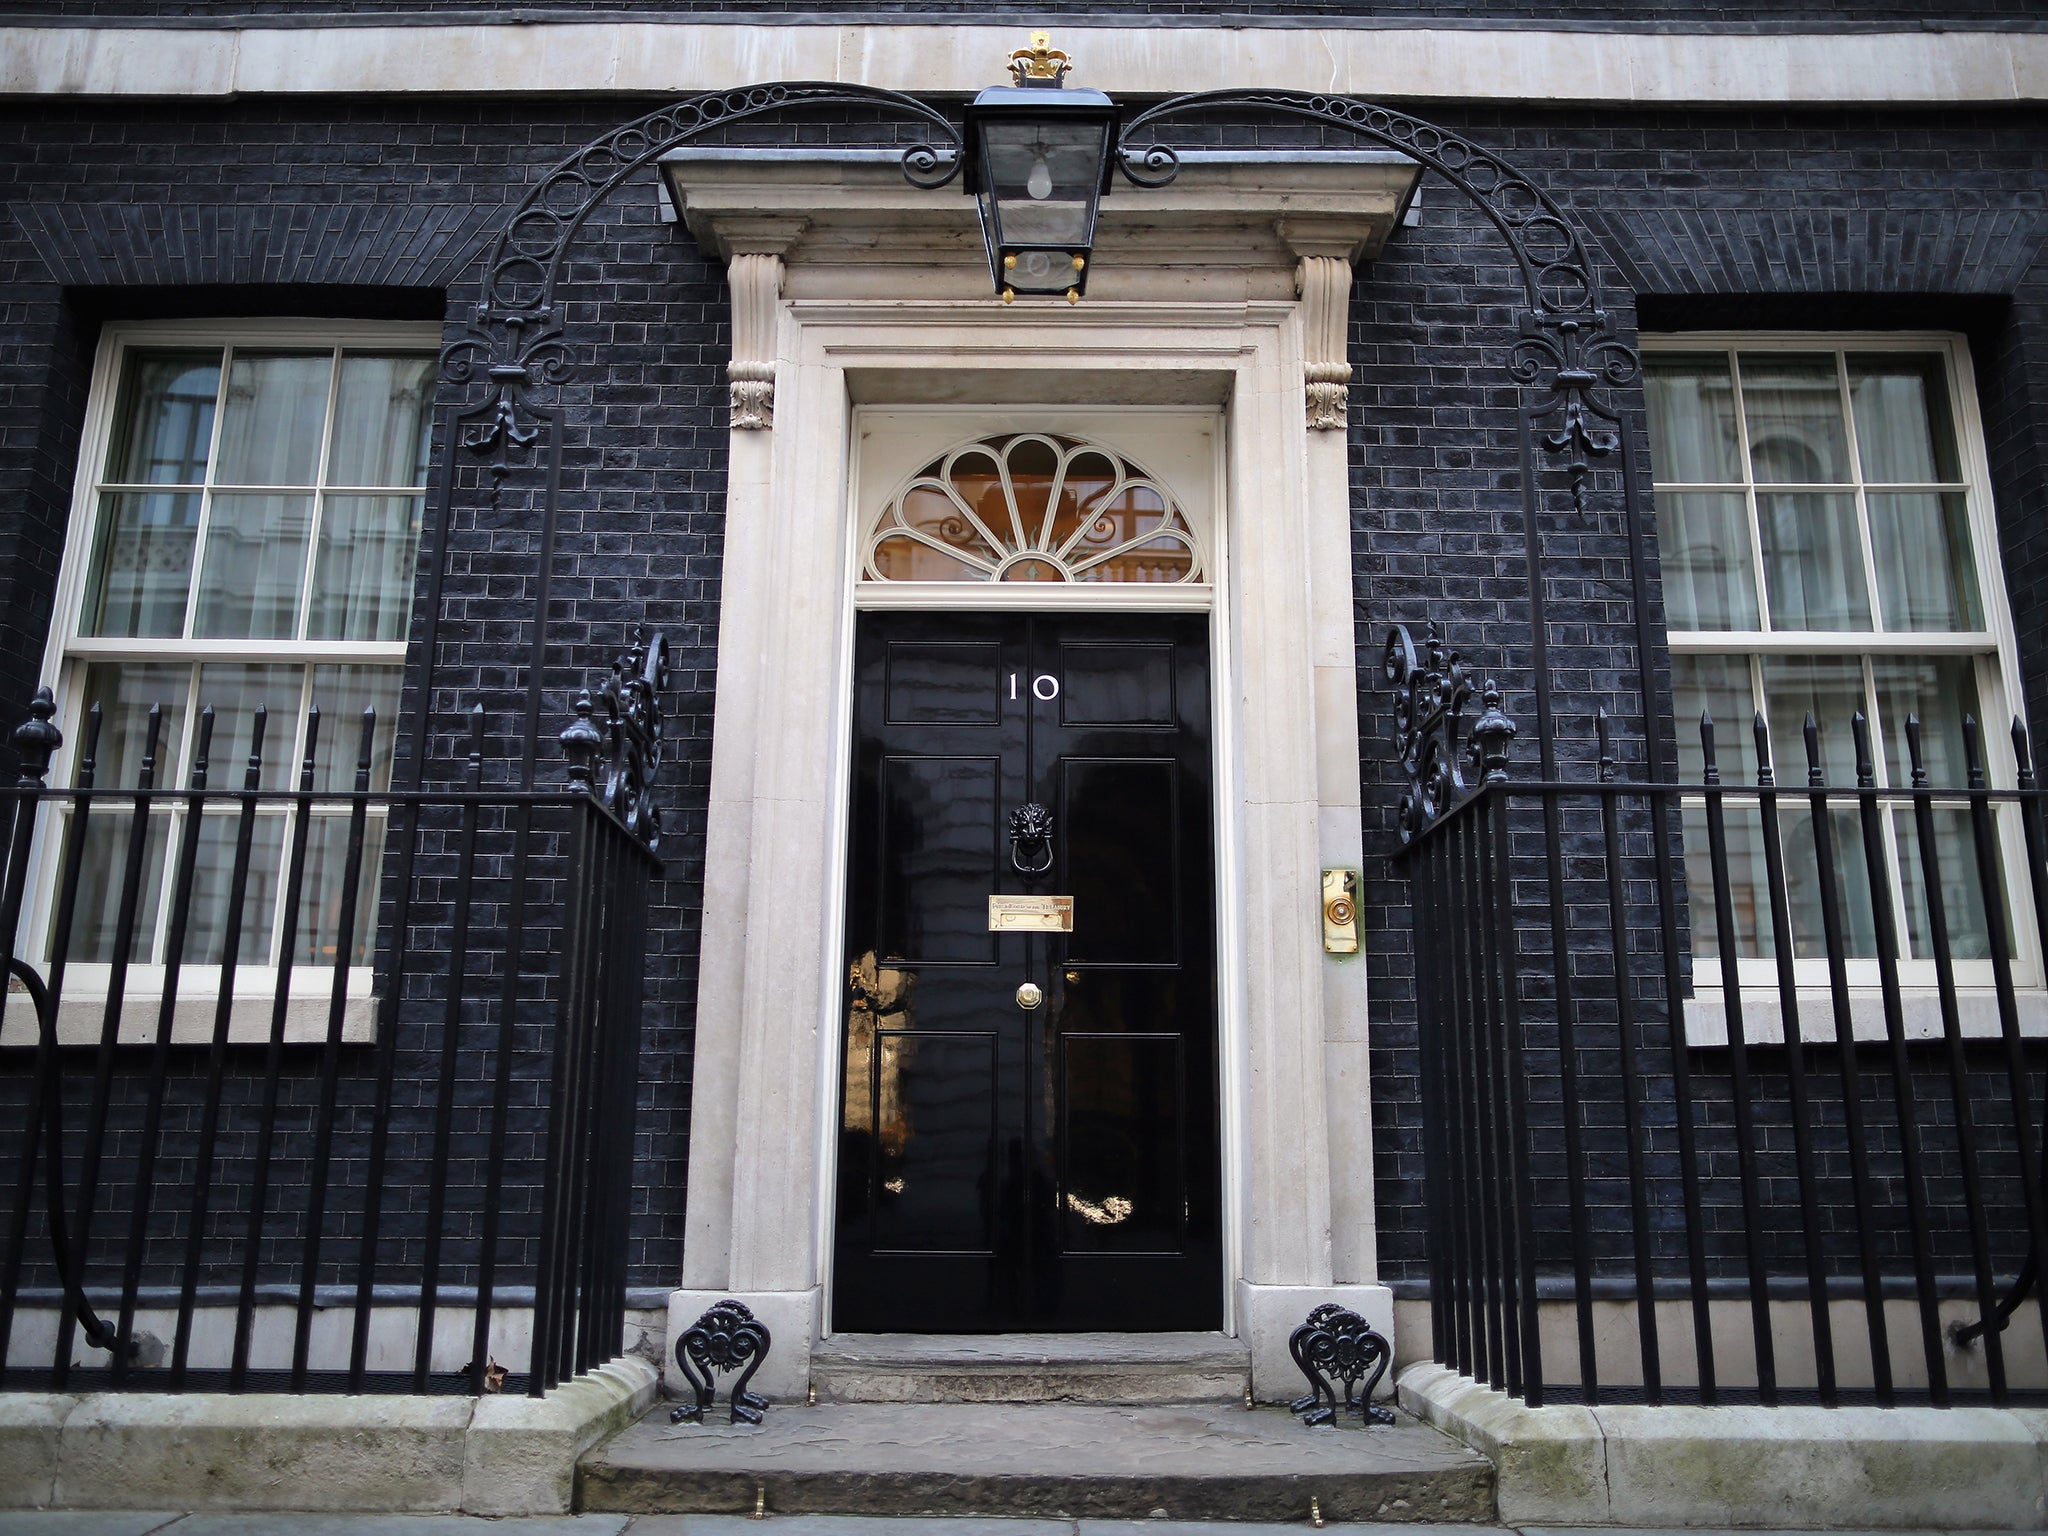 10 downing street take a rare glimpse inside the prime minister 39 s home the independent. Black Bedroom Furniture Sets. Home Design Ideas